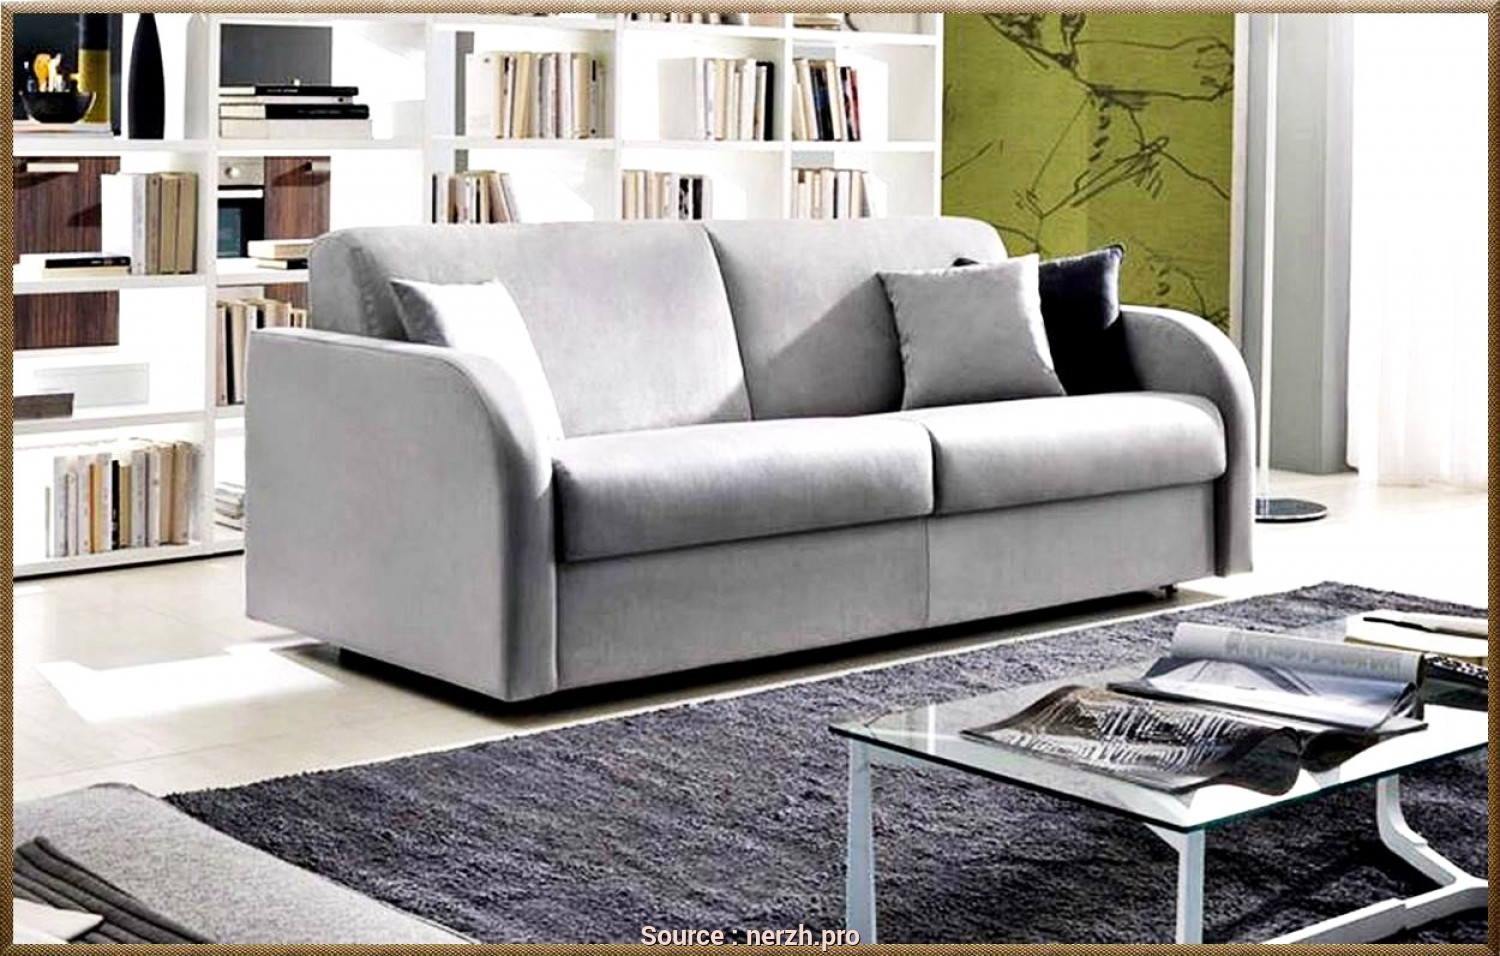 Divano Arginelli Poltrone E Sofa, Affascinante Poltrone Sofa Arginelli Misure : Cereglio Poltrone E Sofa Bold Design Copyedit Me